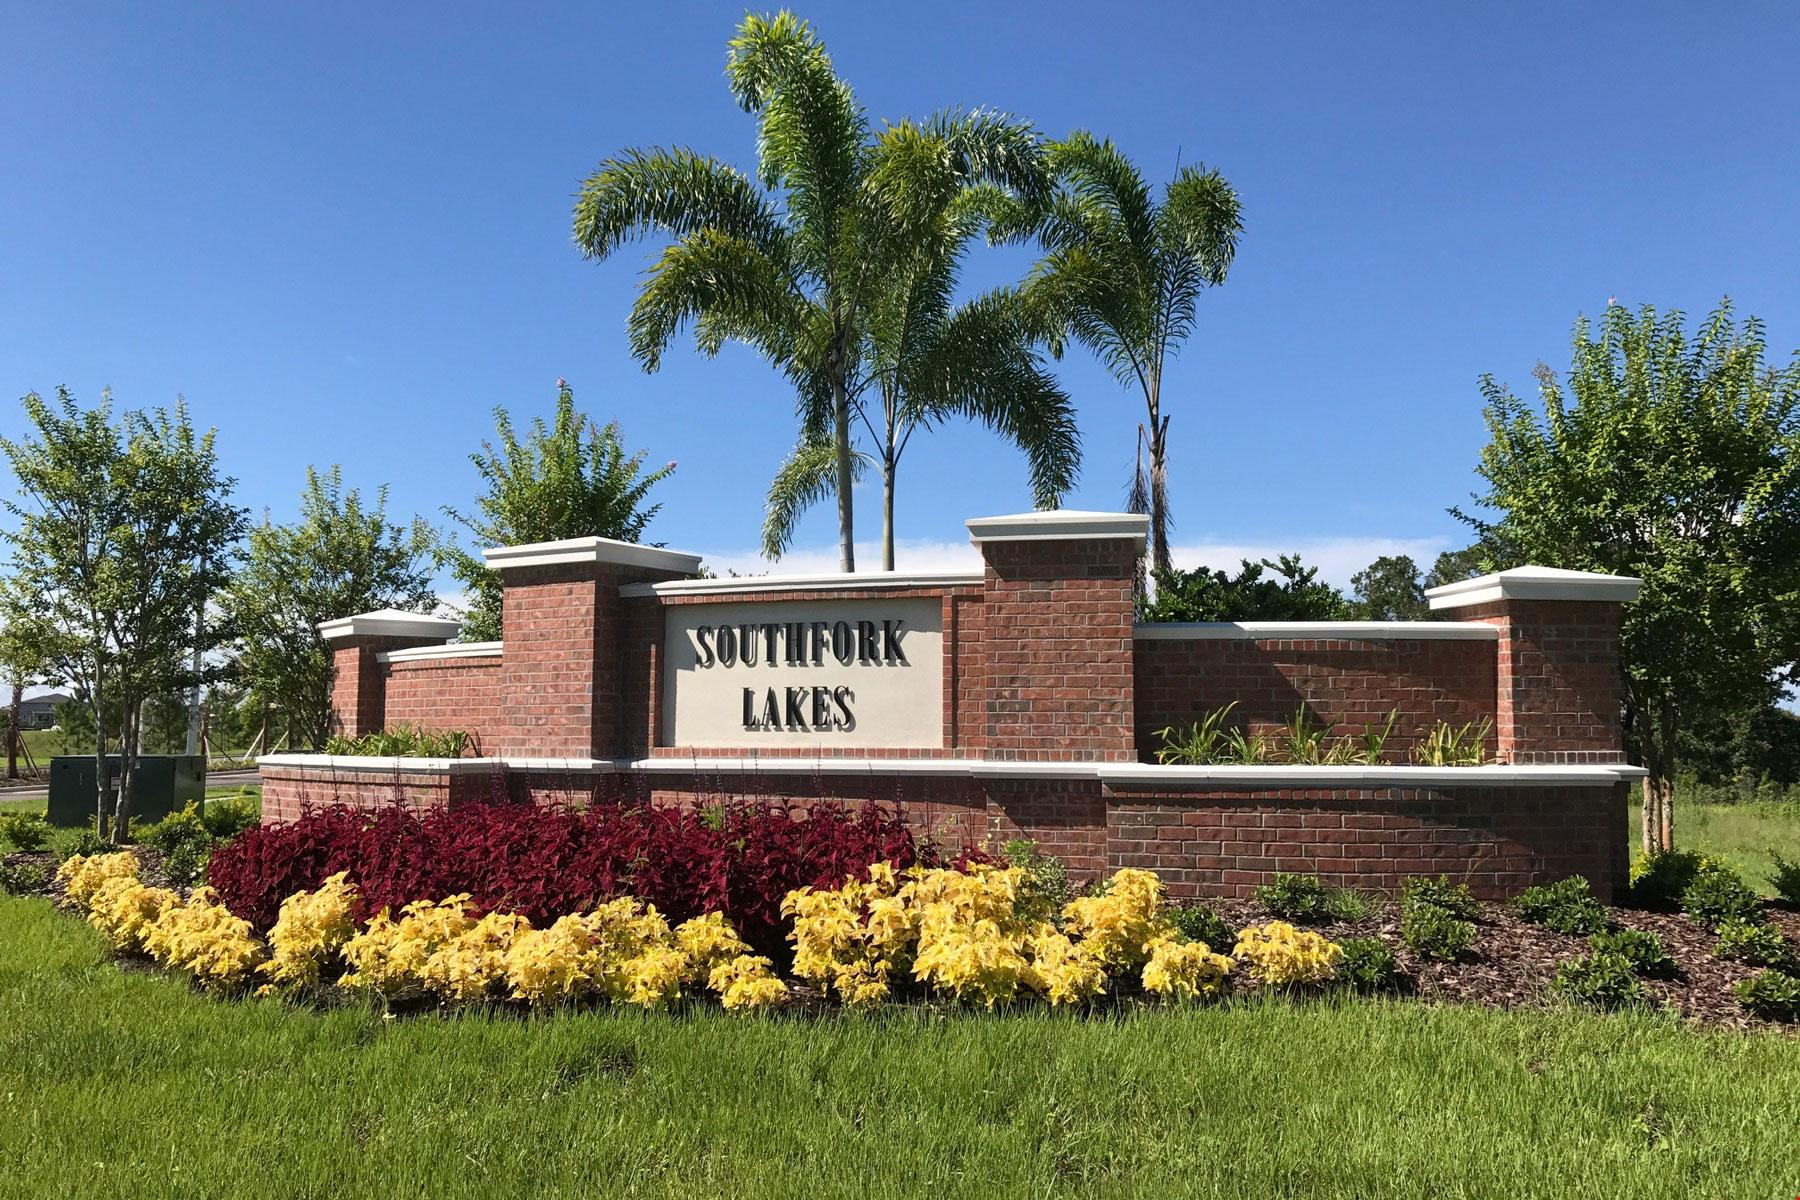 South Fork Riverview Florida Real Estate | Riveview Florida Realtor | New Homes for Sale | Tampa Florida